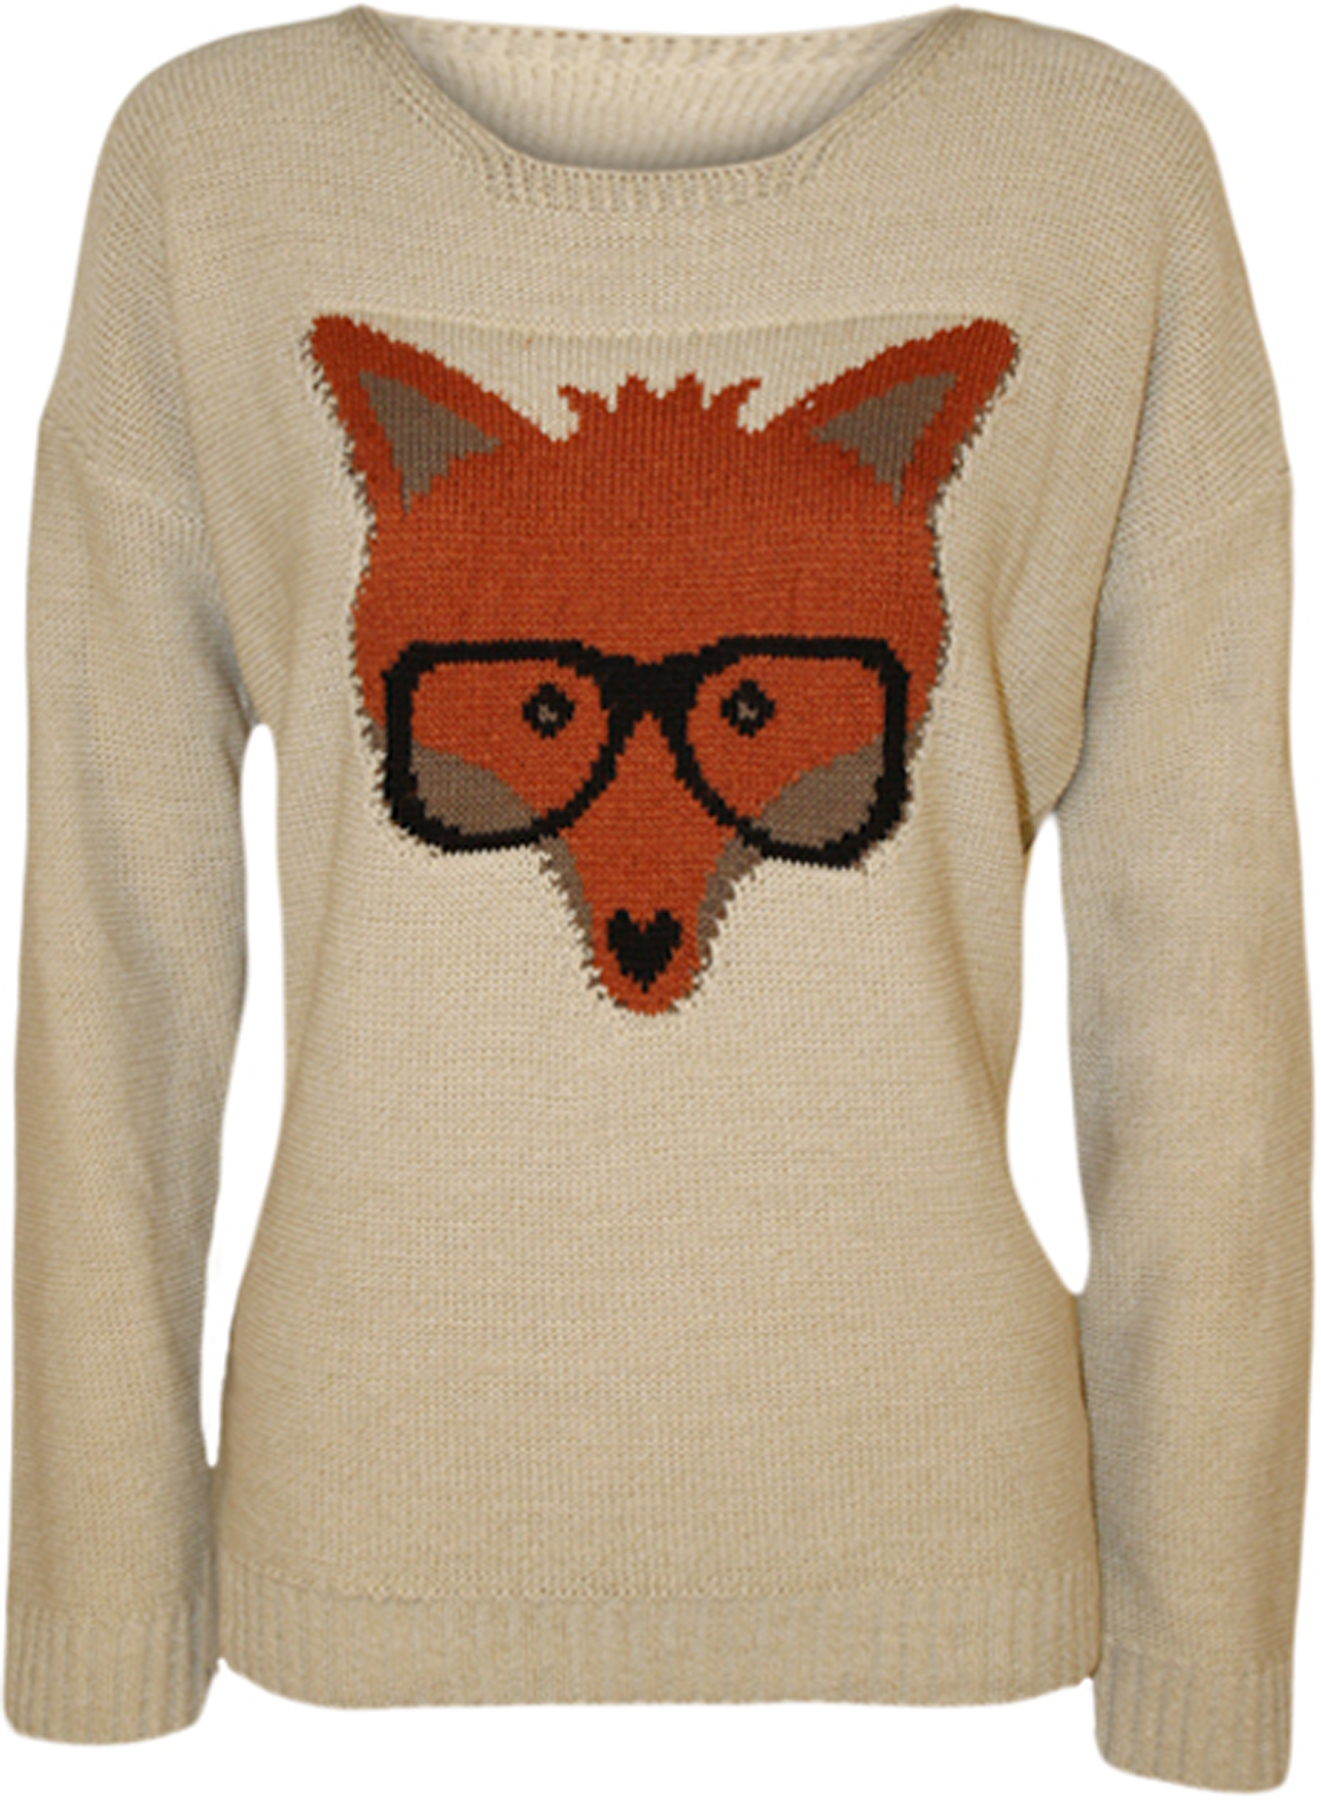 new womens fox glasses knitted jumper ladies long sleeve